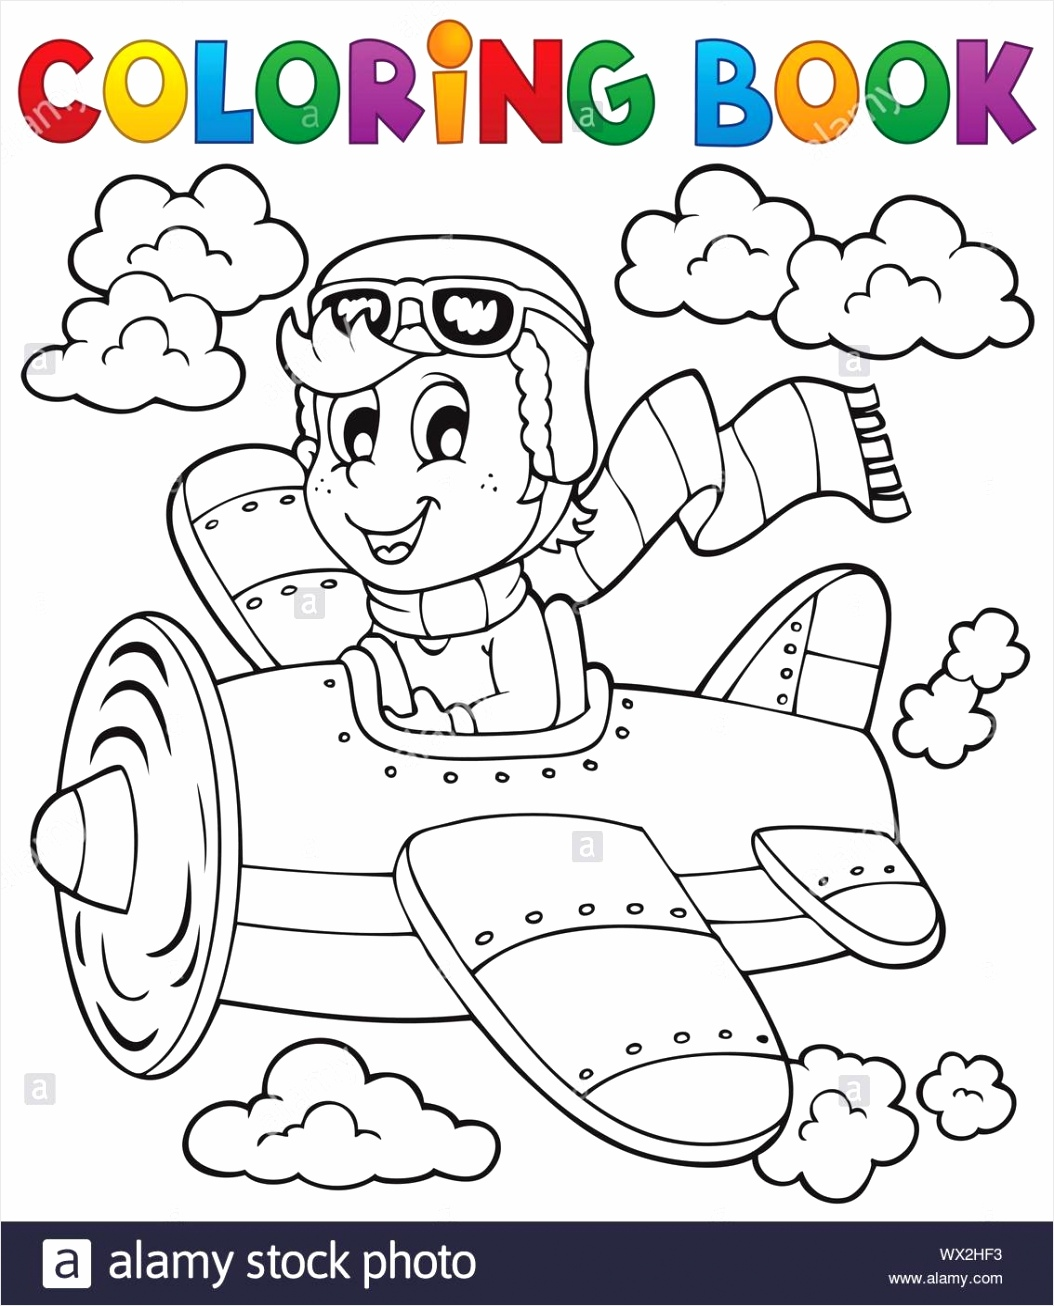 coloring book airplane theme 1 image rpero